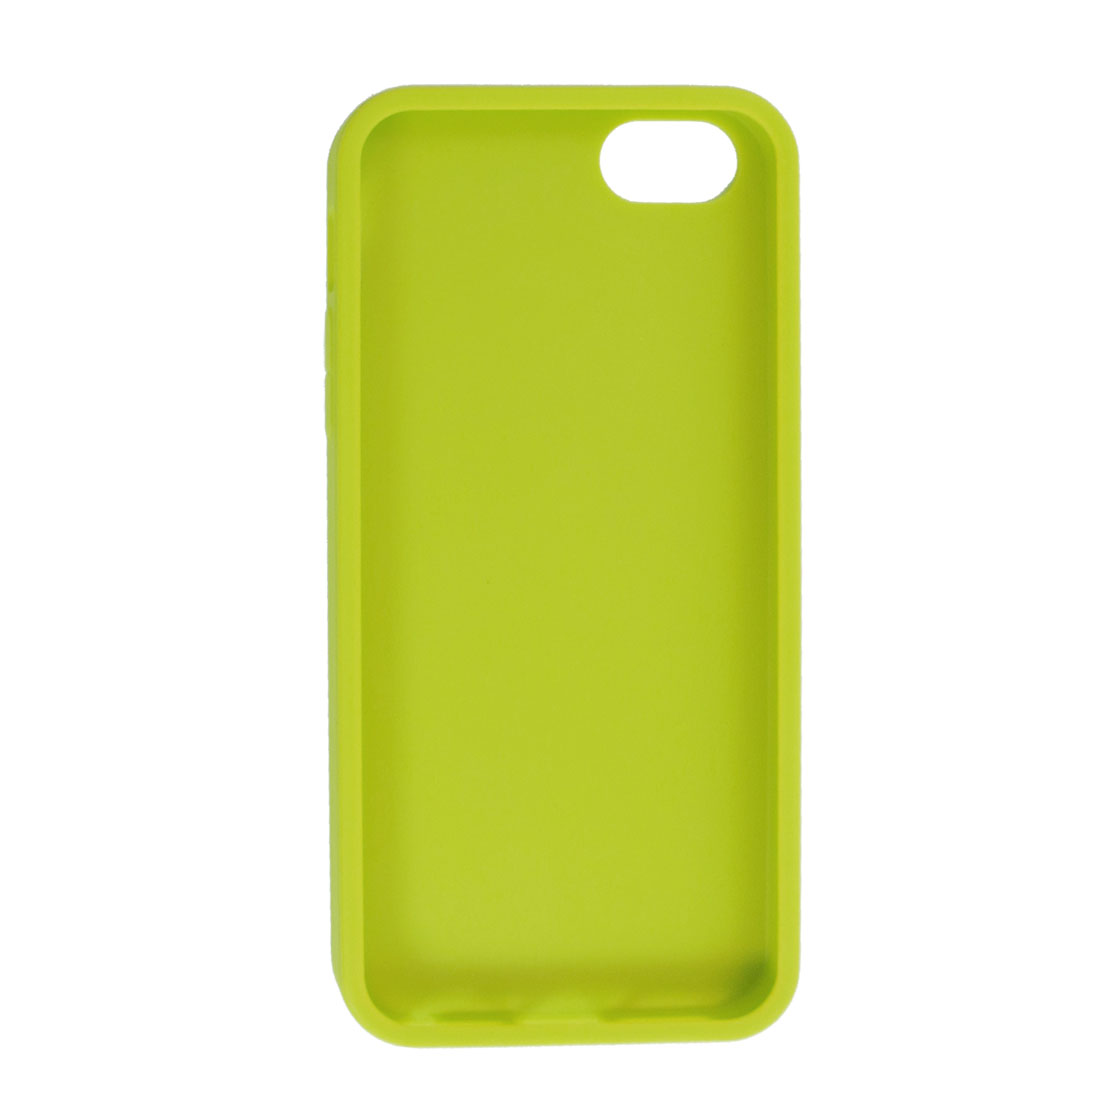 Yellow Green Soft Plastic Embossed Protective Back Cover Case for iPhone 5 5G